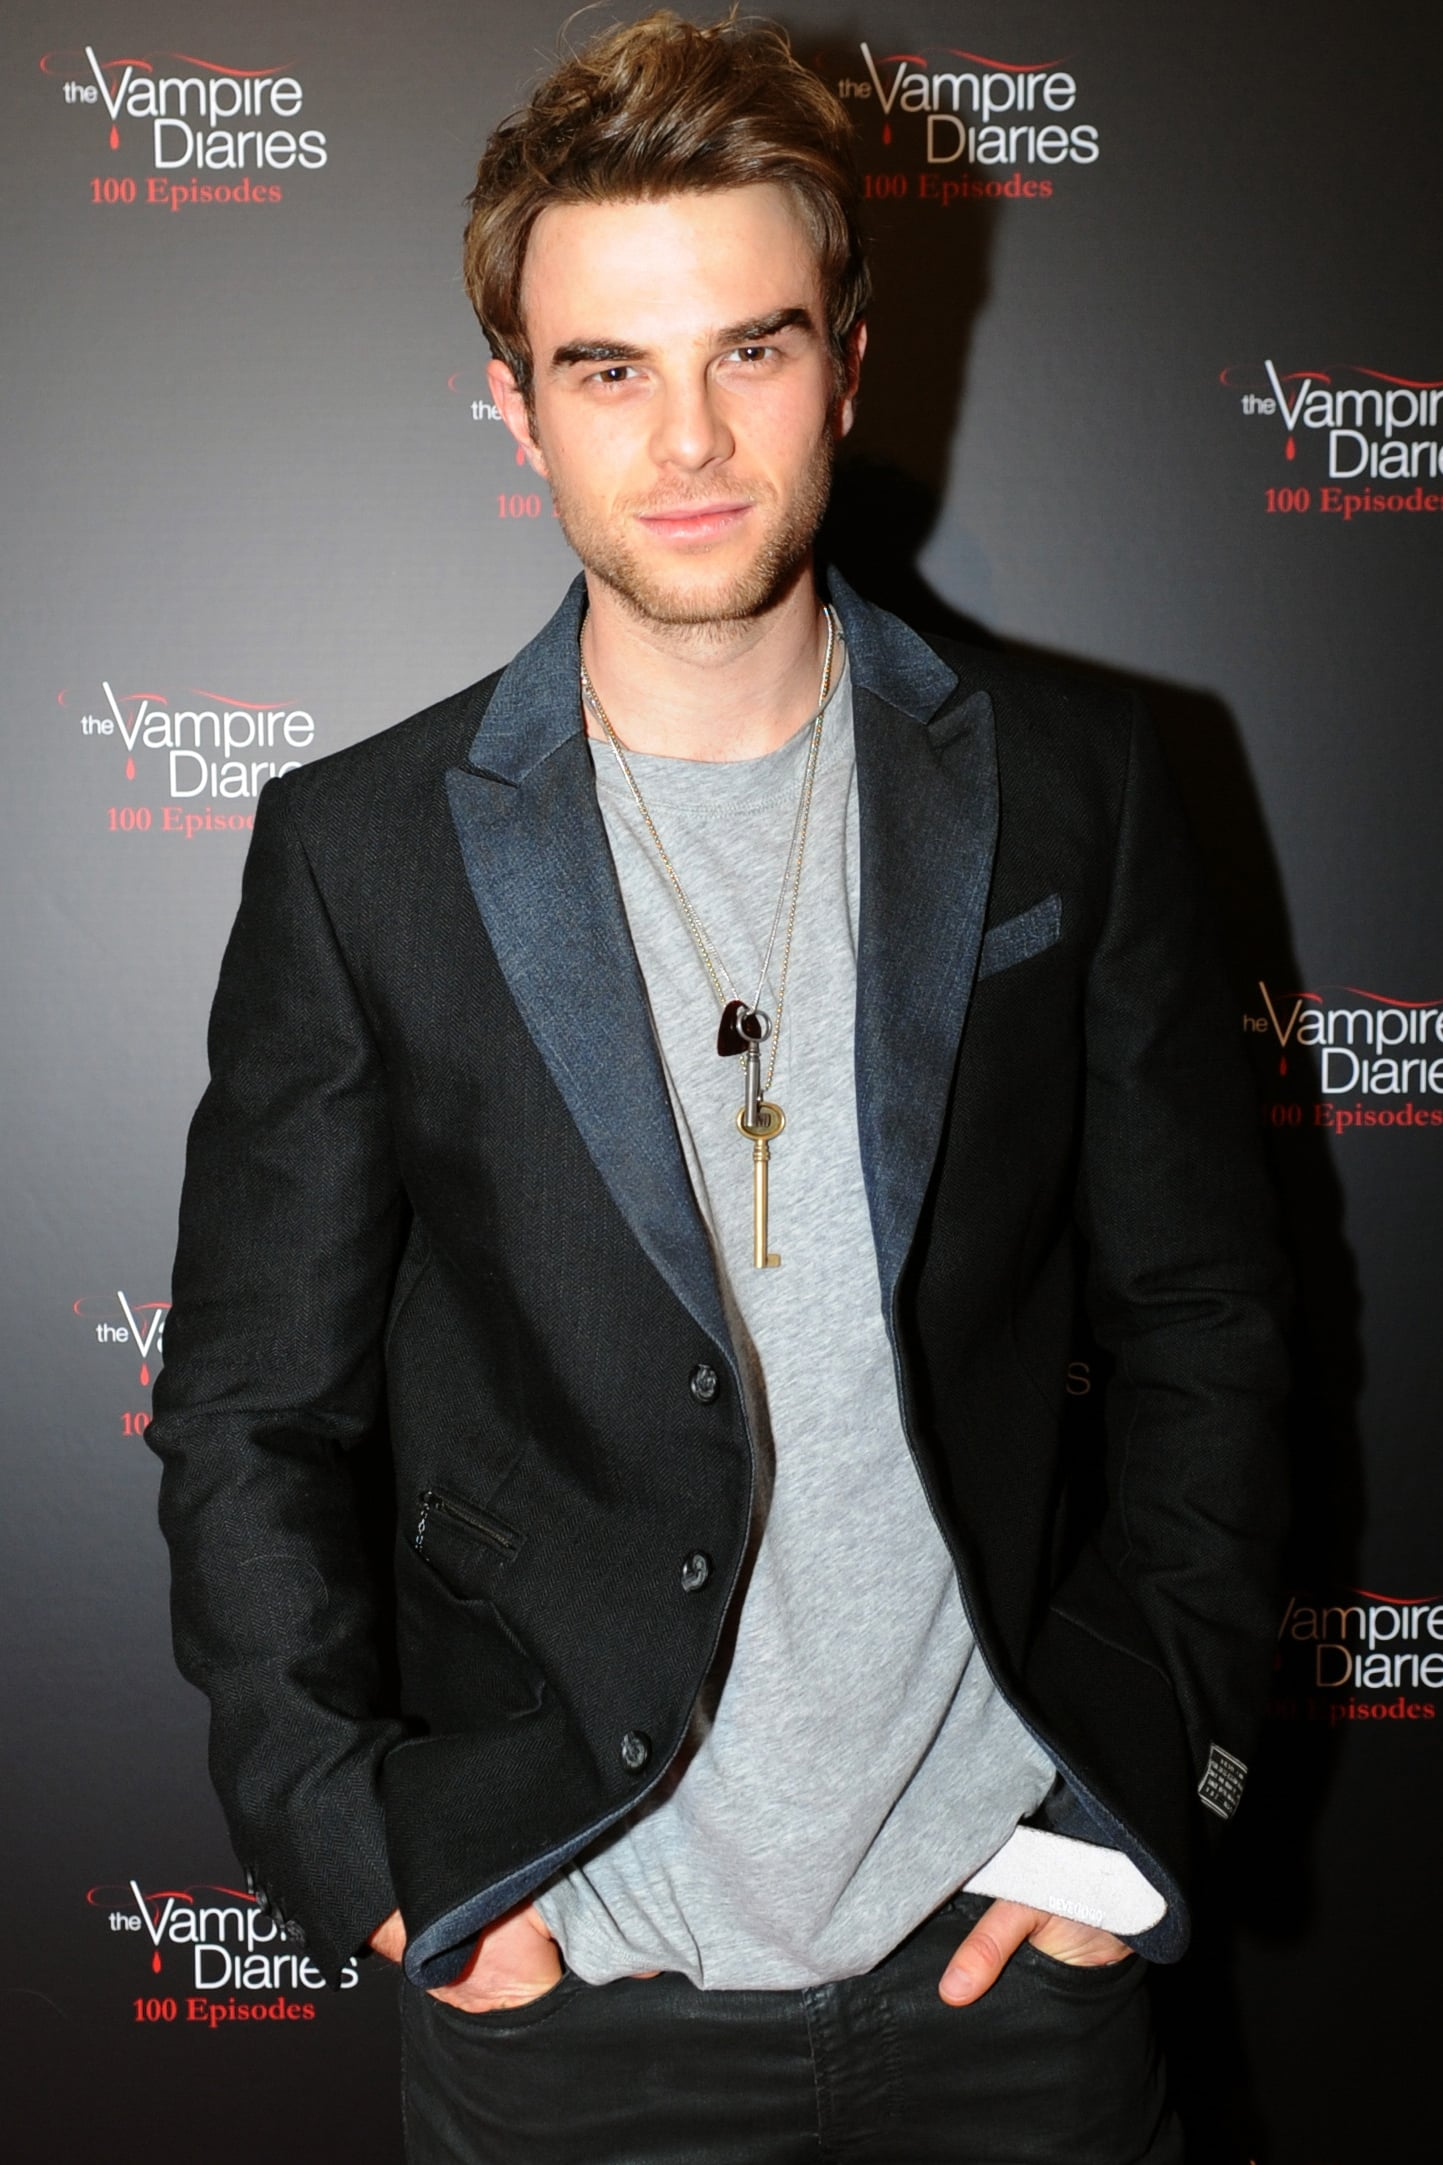 "Nathaniel Buzolic will play David Hayden, ""a shapeshifter from one of the ruling monster families who's been living as a human, having given up the monster life years ago."" If he looks familiar, it's because he's Kol from The Vampire Diaries!"